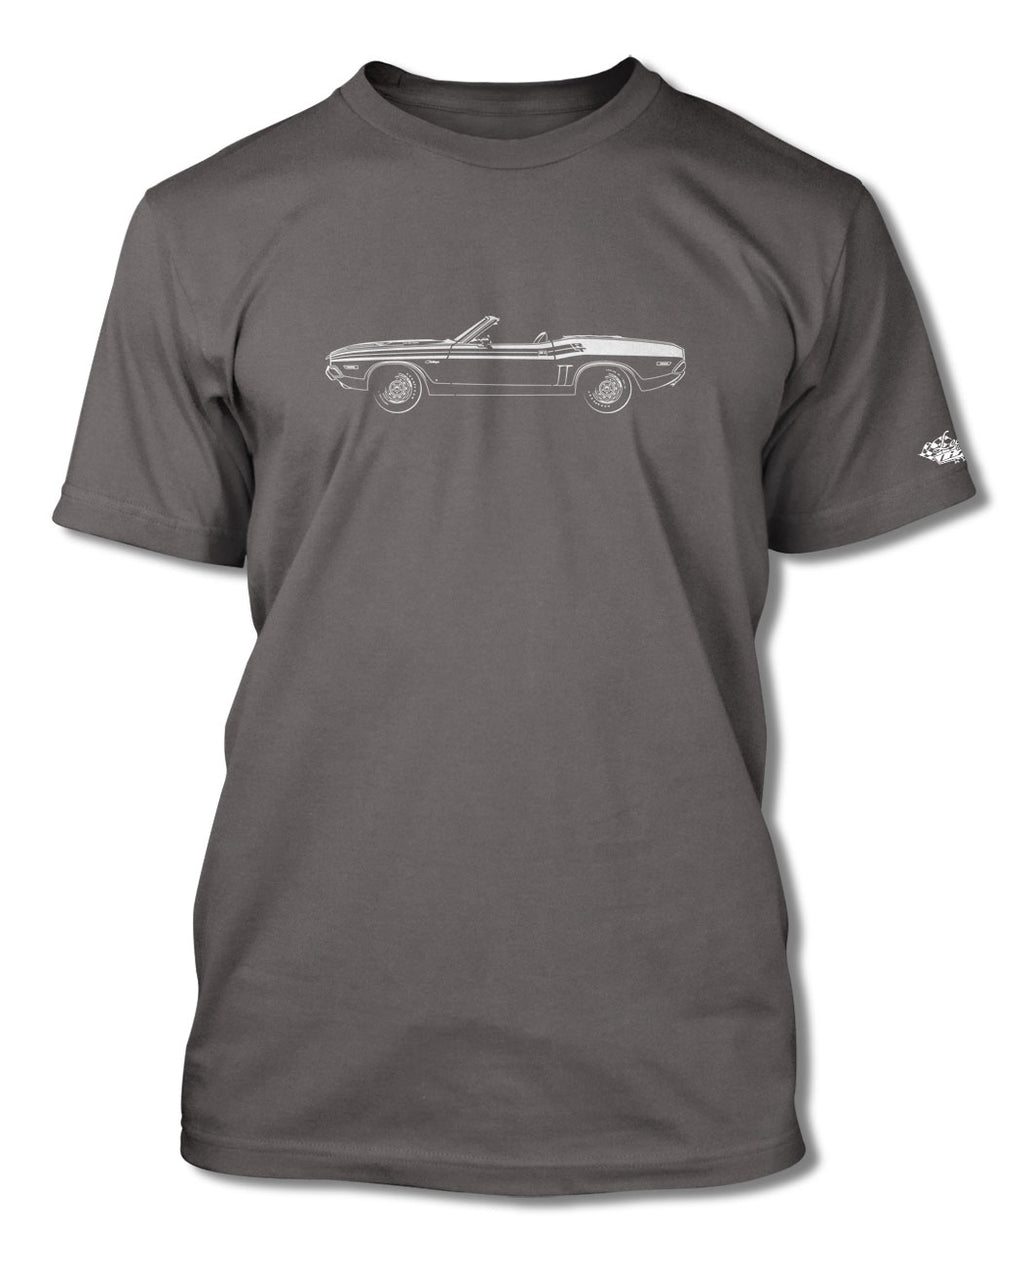 1971 Dodge Challenger RT with Stripes Convertible Bulge Hood T-Shirt - Men - Side View